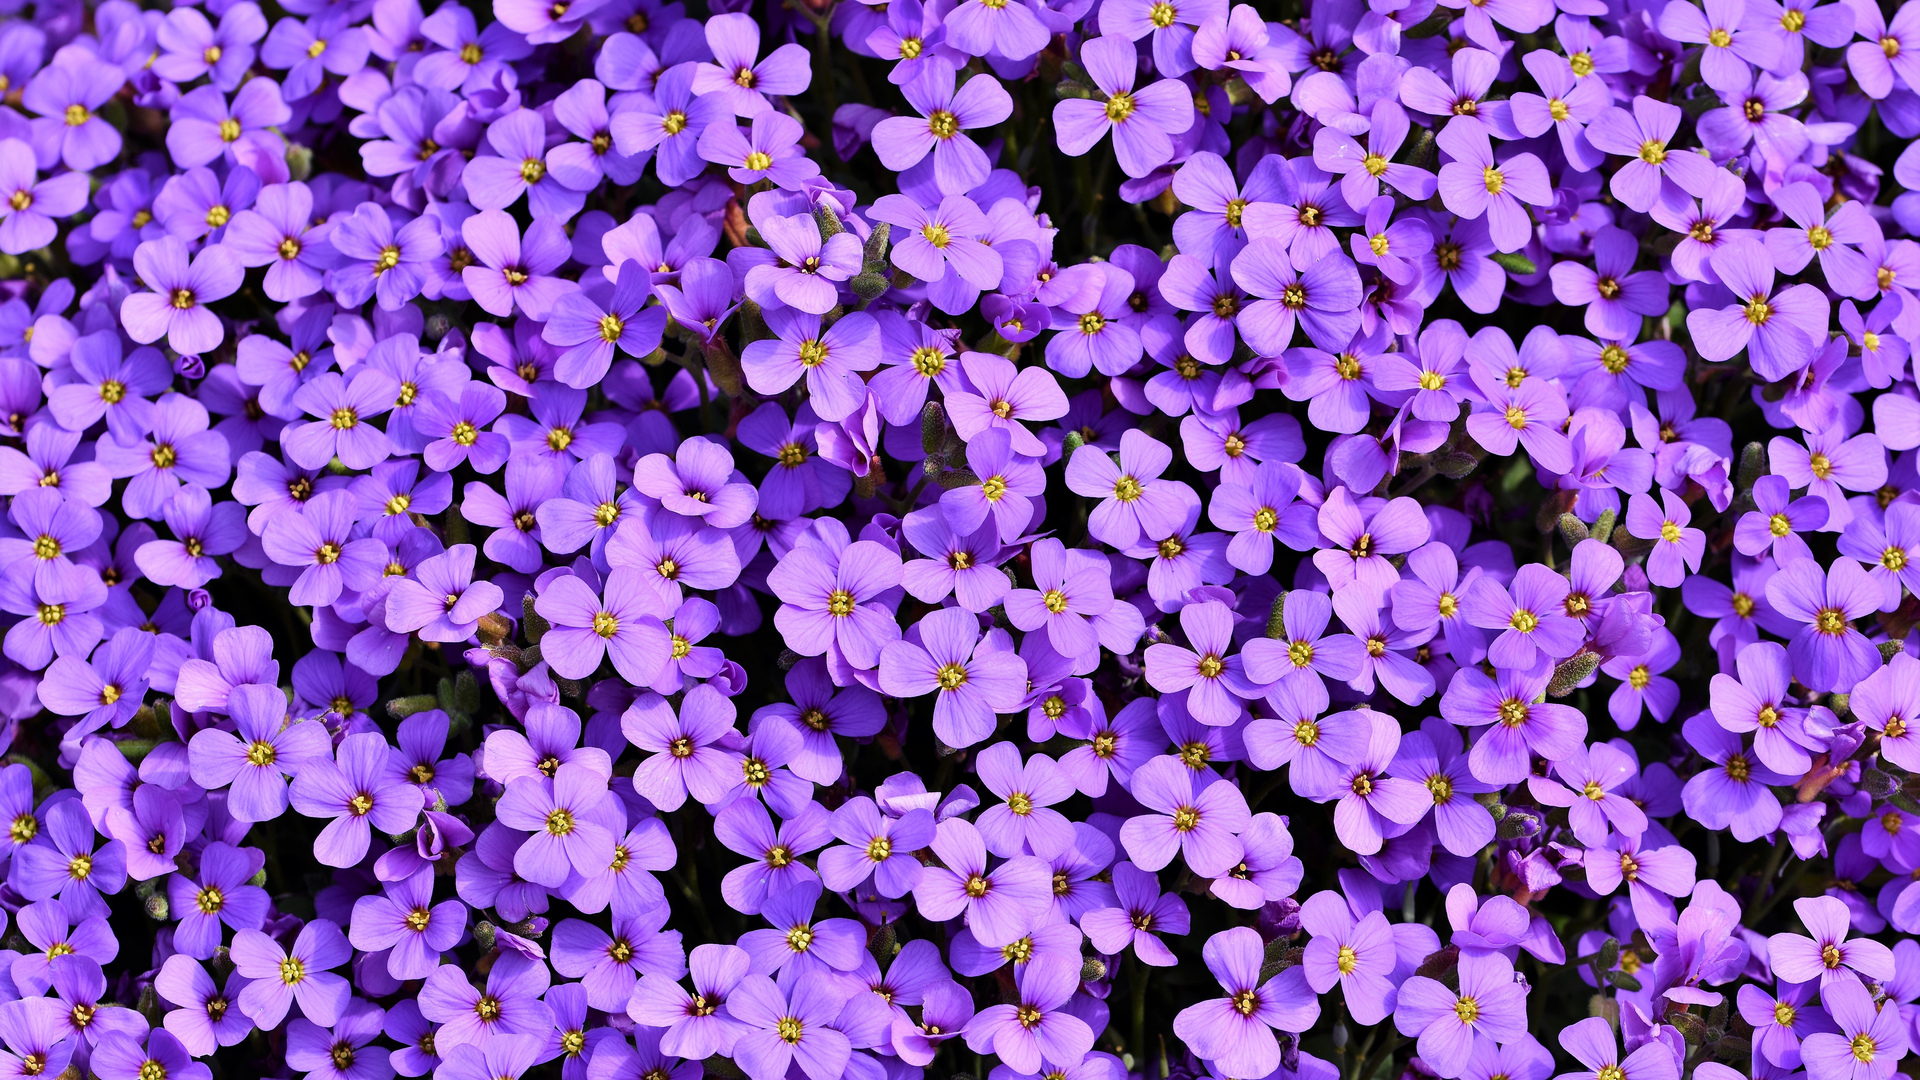 1920x1080 Purple Flowers Background 5k Laptop Full Hd 1080p Hd 4k Wallpapers Images Backgrounds Photos And Pictures